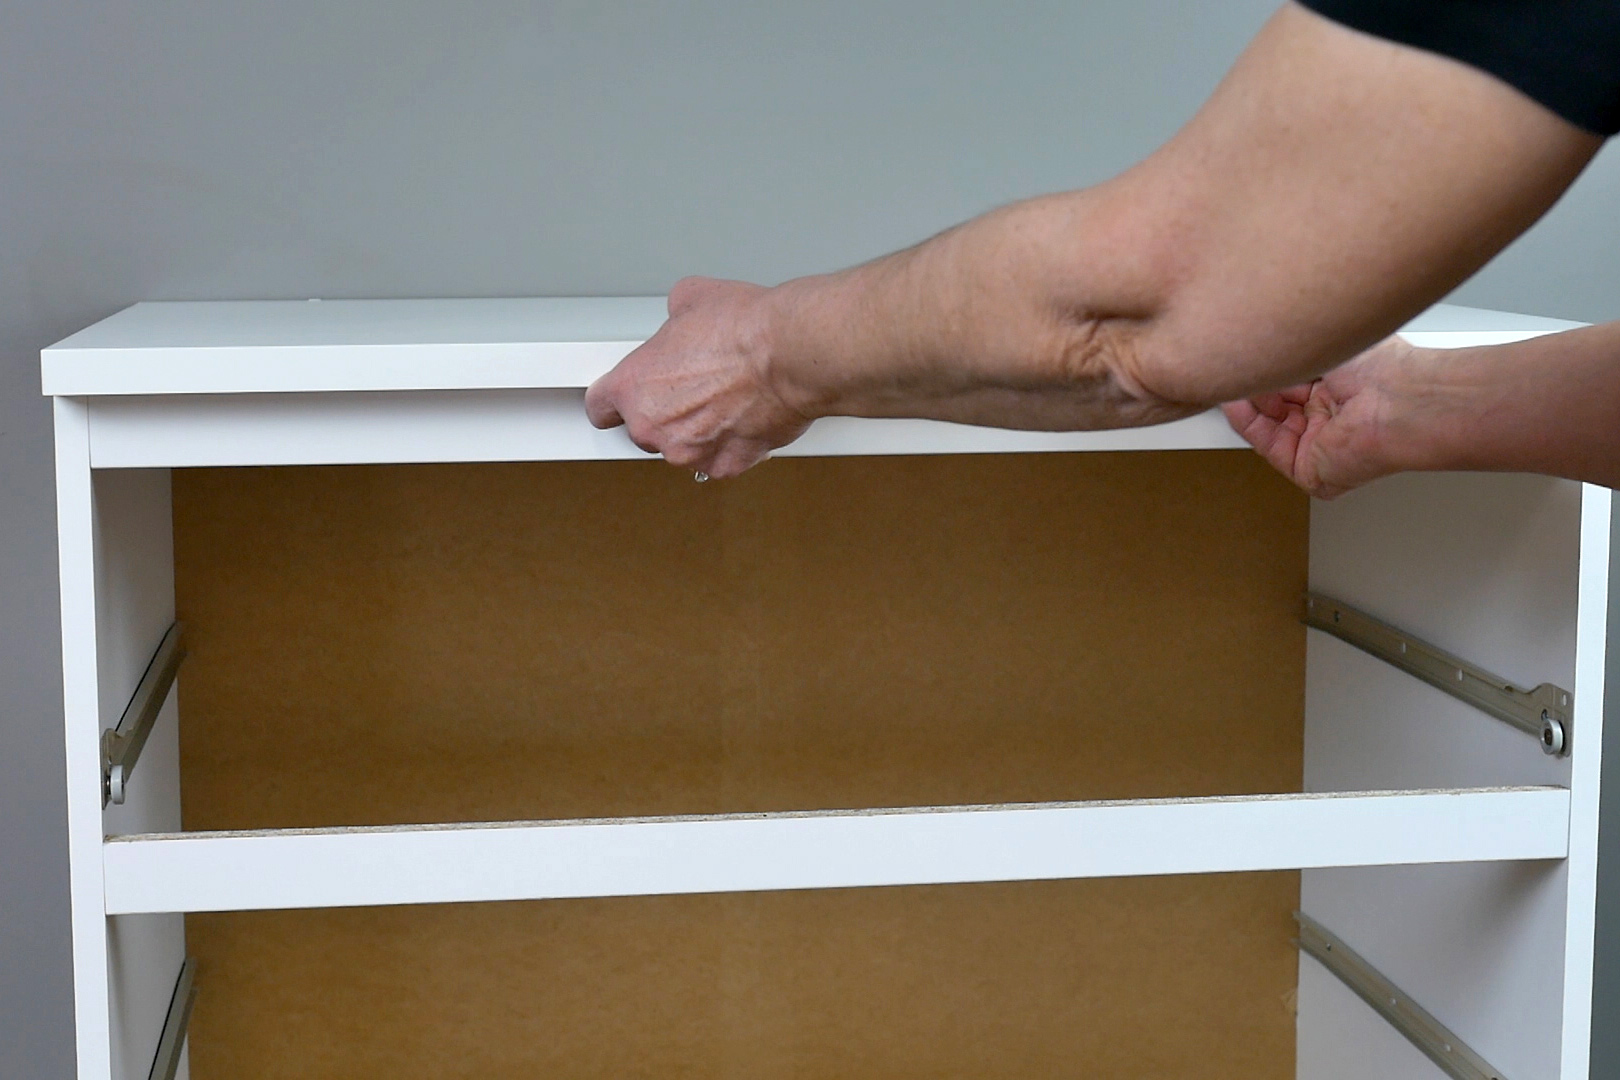 How To Secure A Dresser The Wall